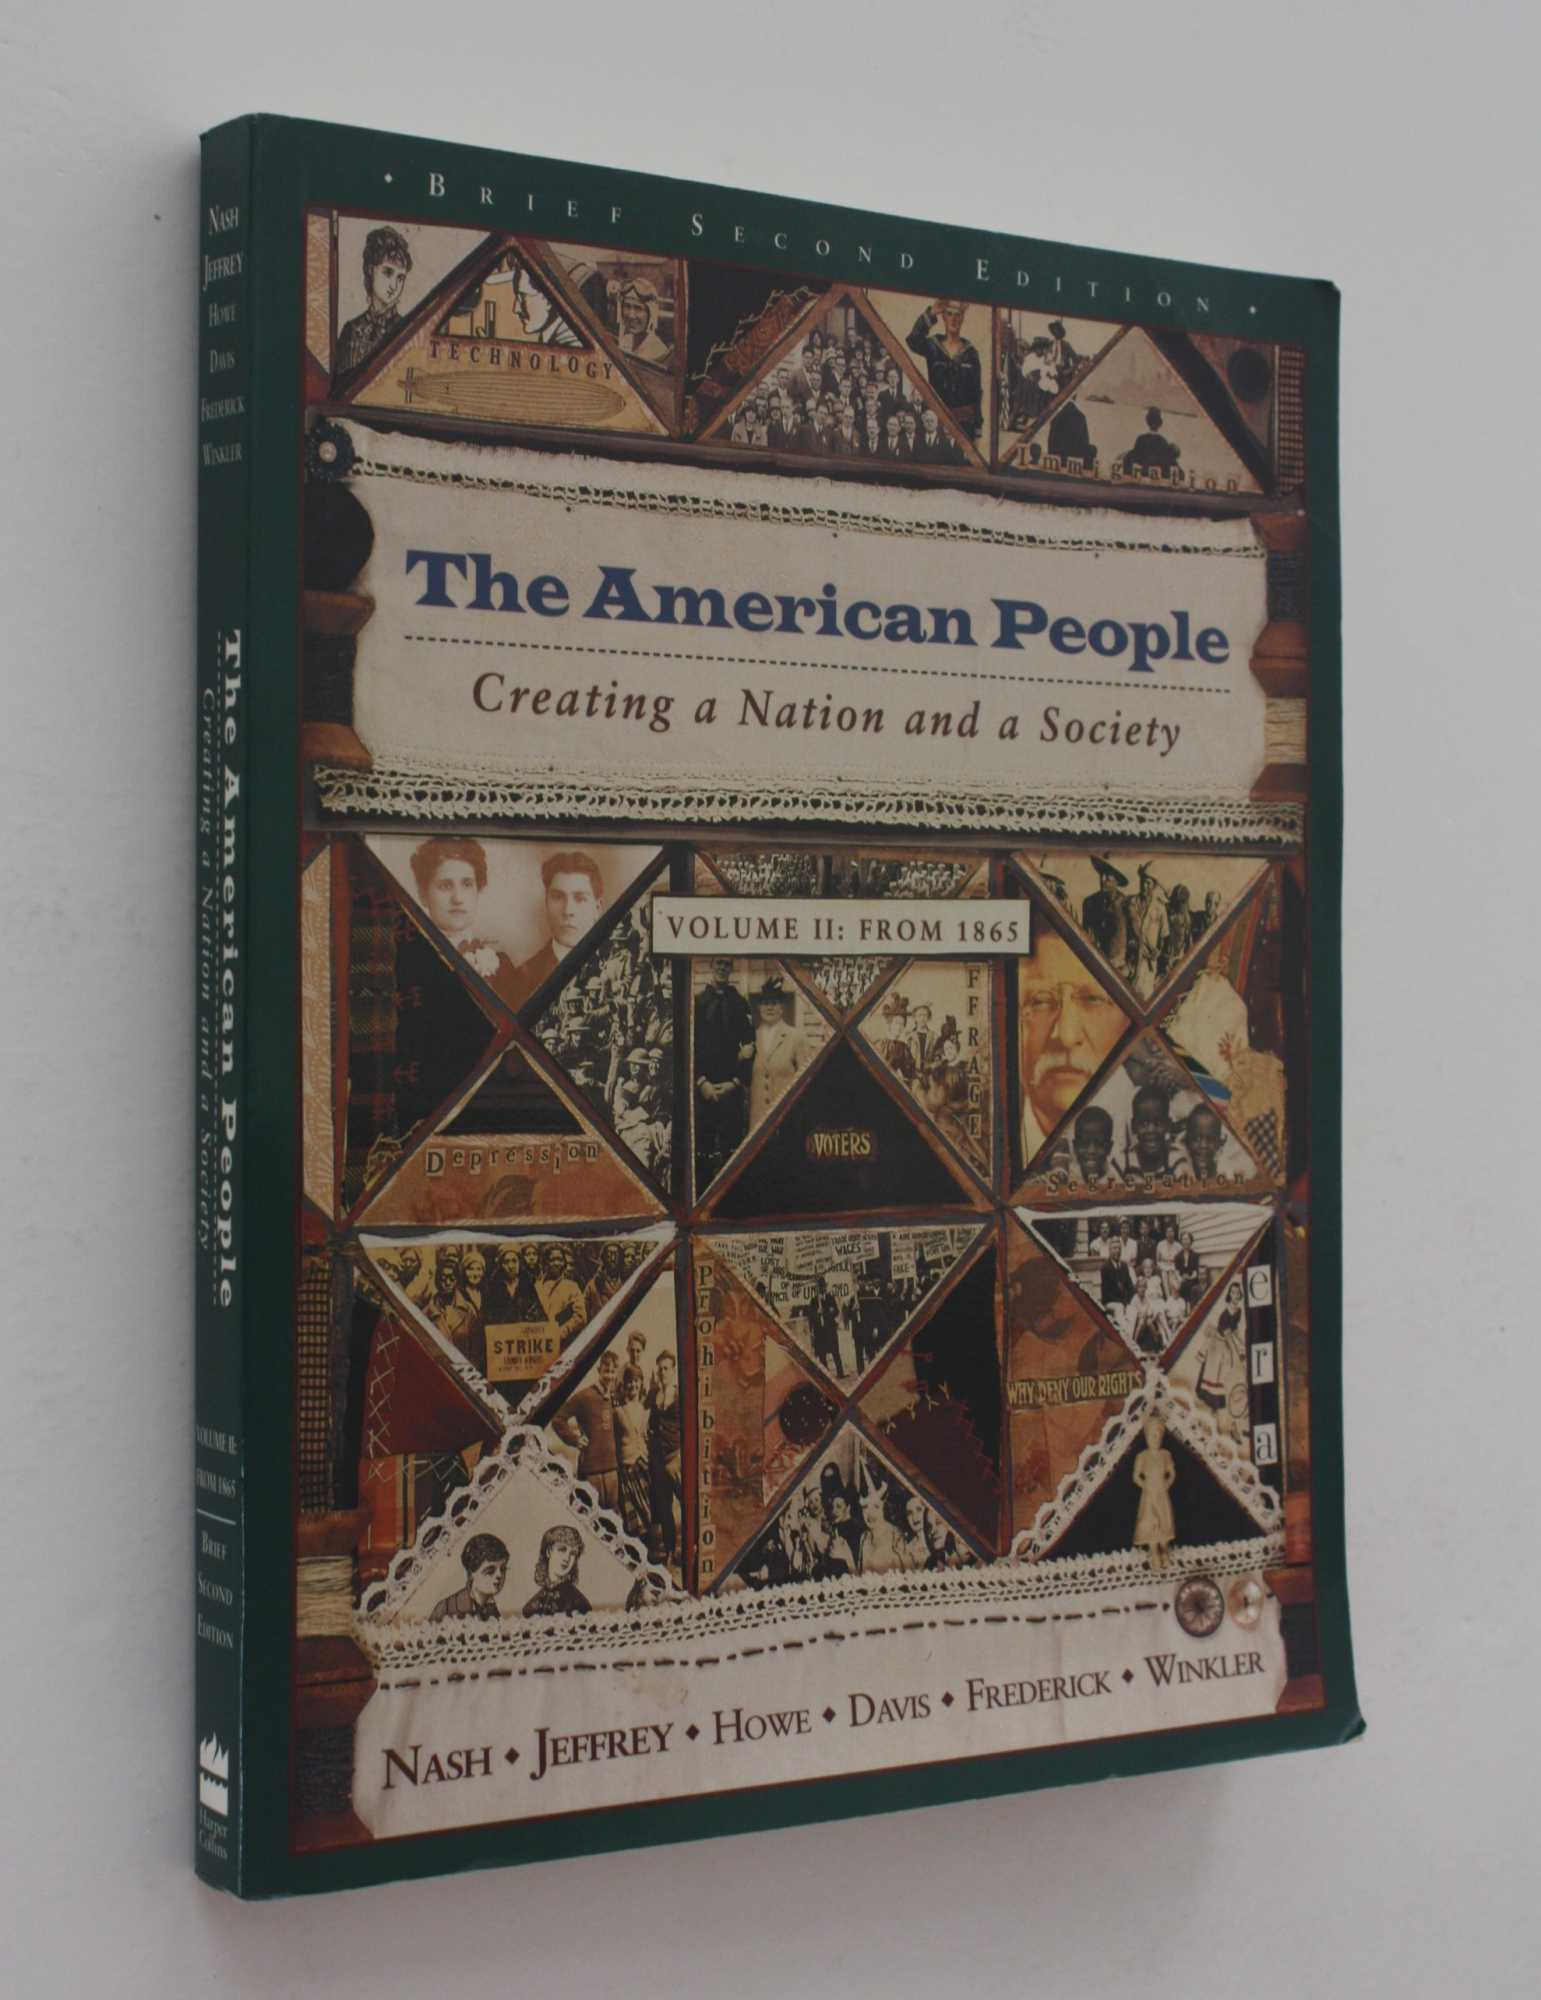 The American People: Creating a Nation and a Society, Volume II - From 1865, Nash and others, Gary B.